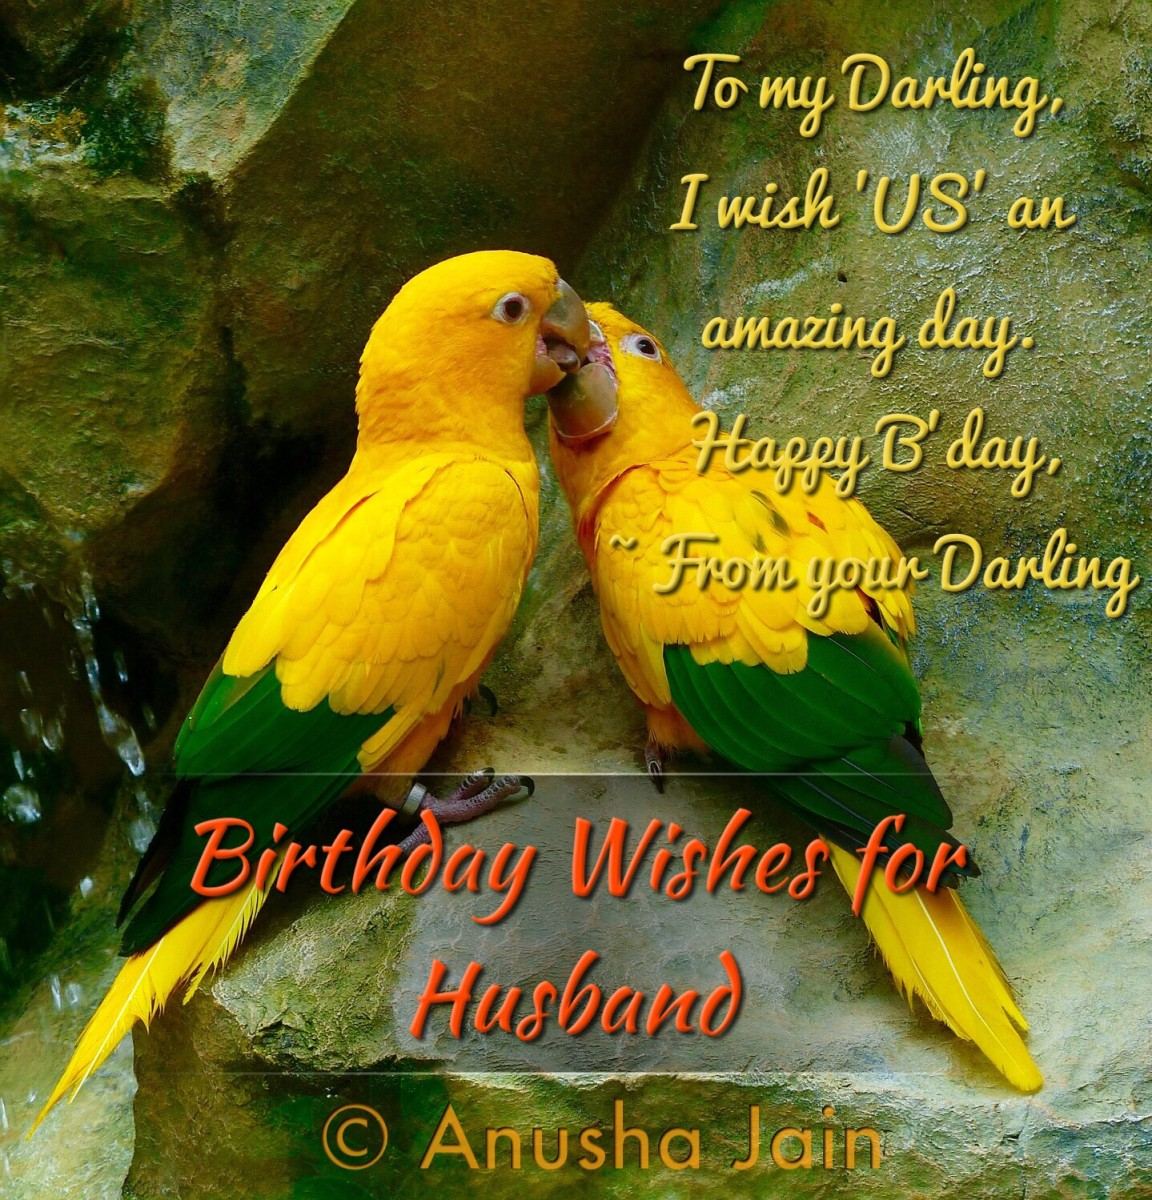 Funny, Heartwarming, Romantic, and Teasing Birthday Wishes ...